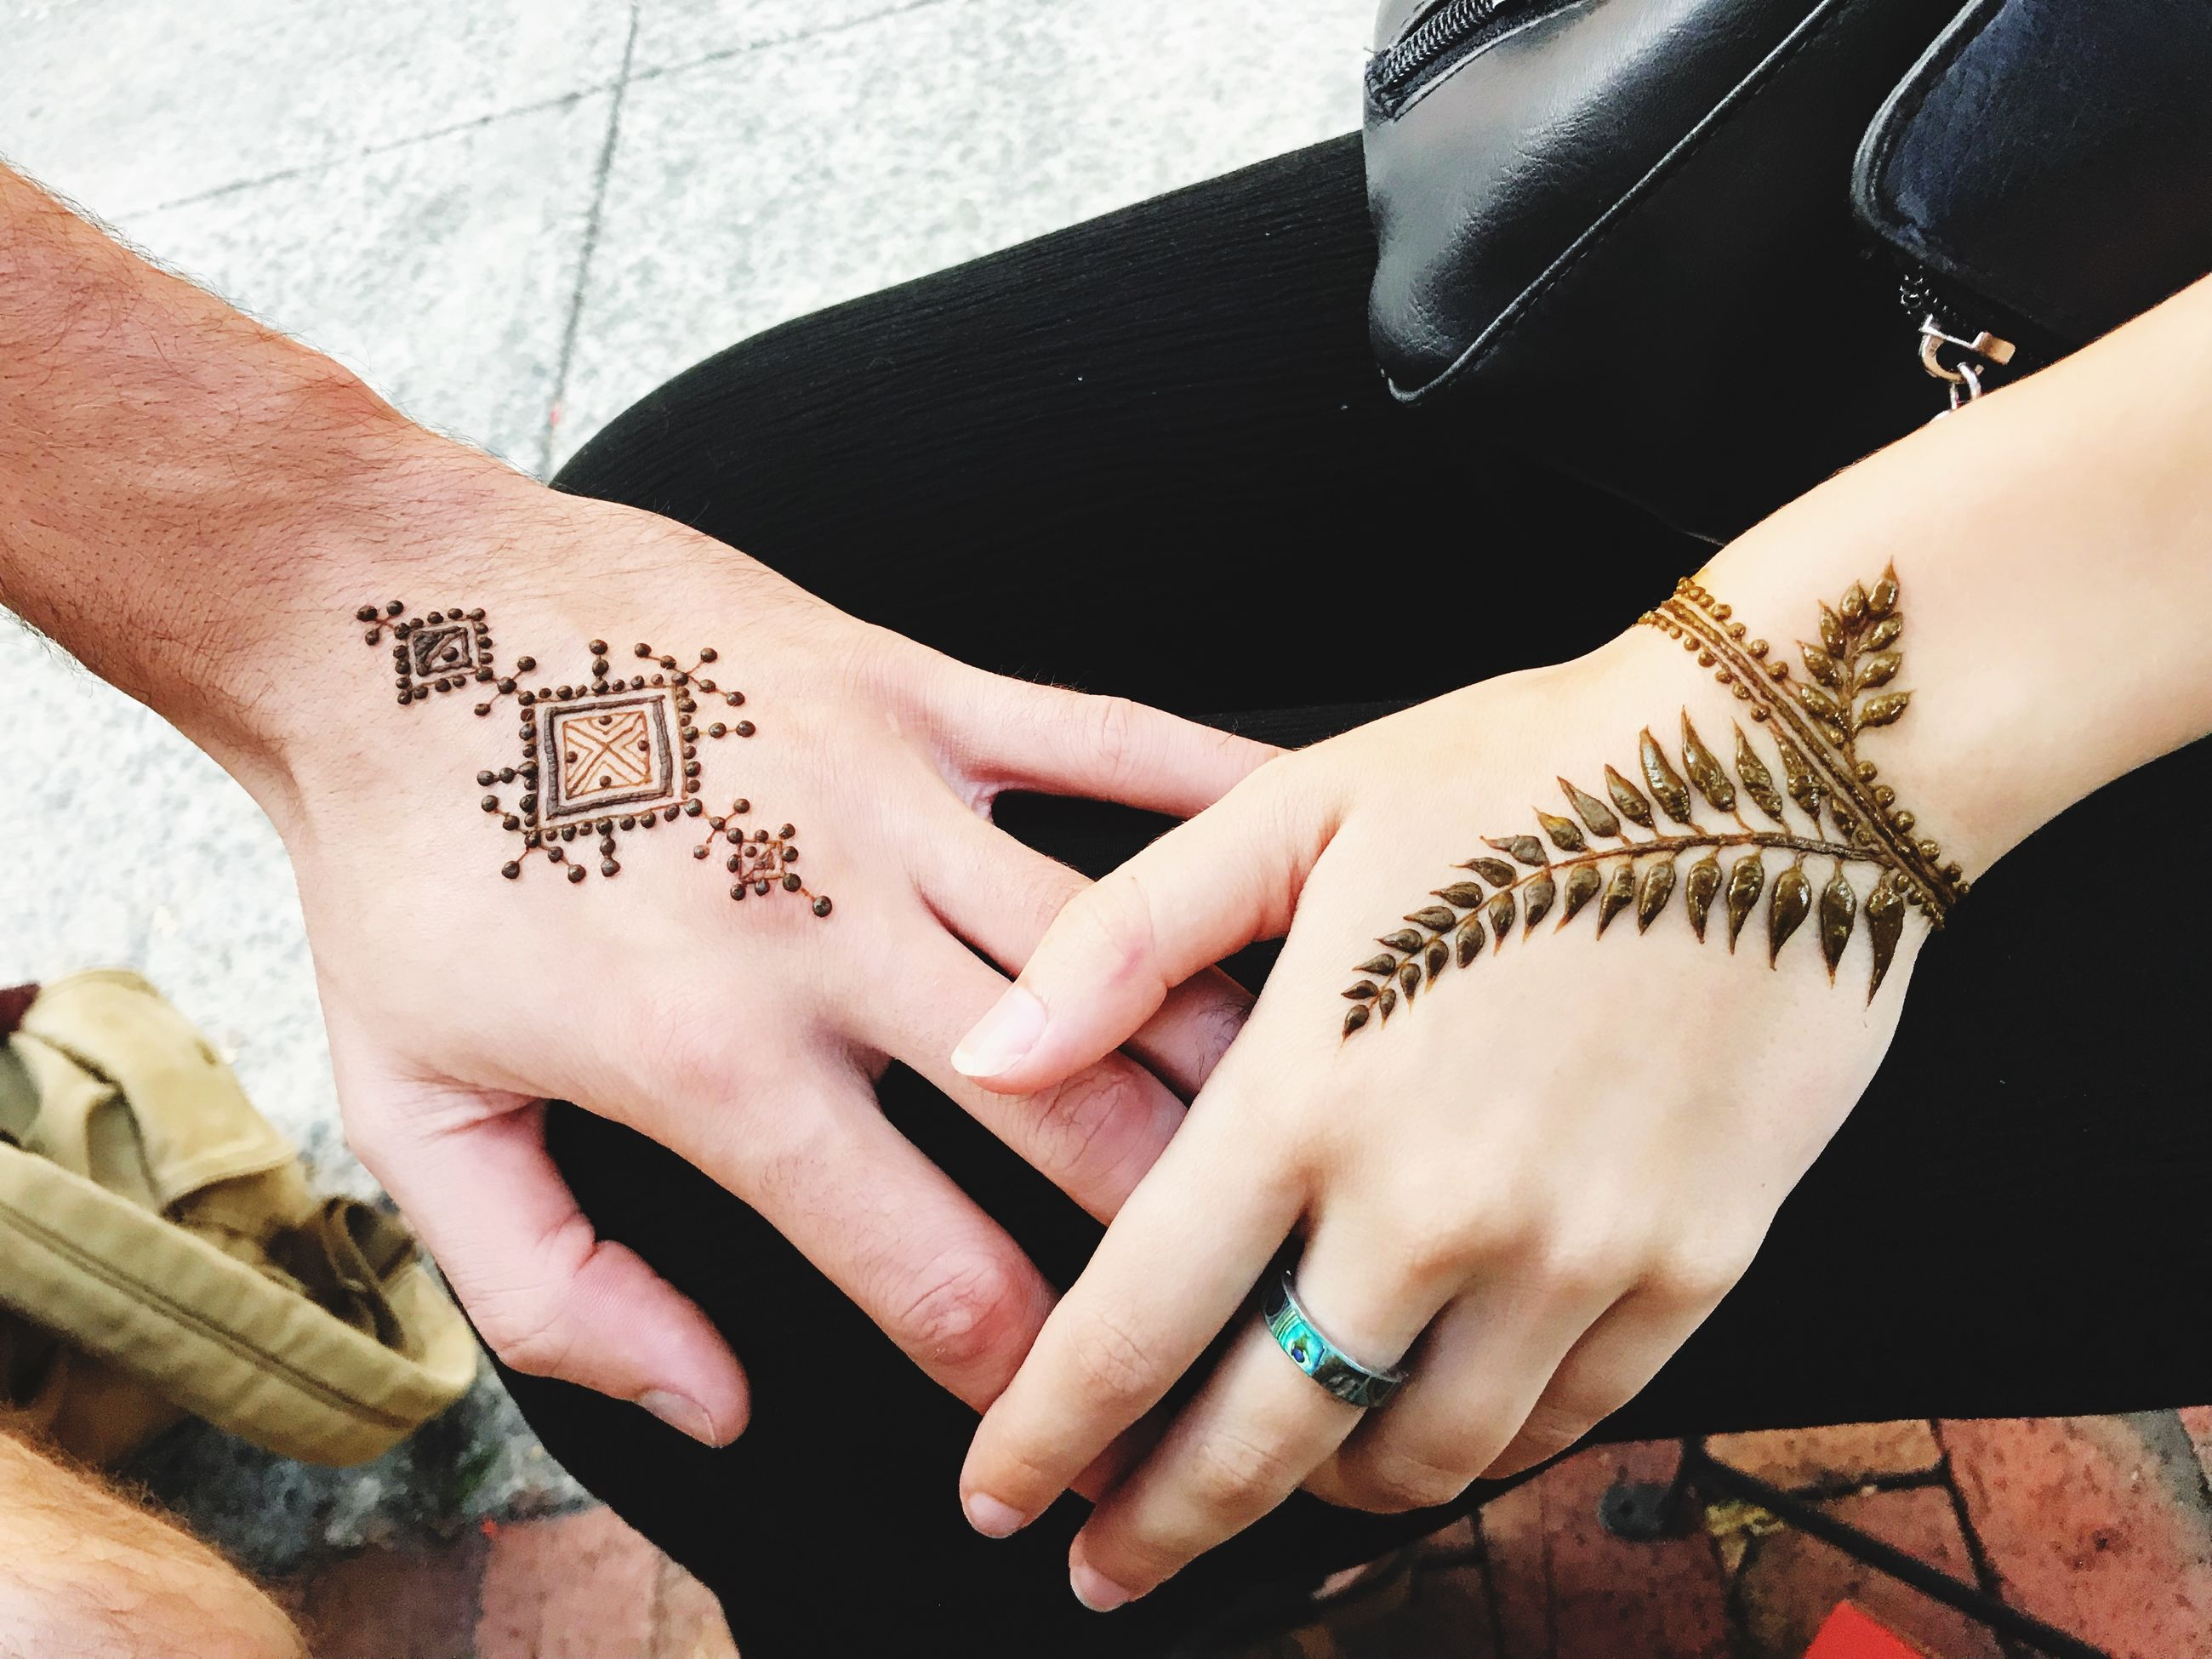 human hand, hand, real people, human body part, tattoo, high angle view, women, lifestyles, midsection, adult, indoors, henna tattoo, creativity, body part, holding, leisure activity, art and craft, finger, nail